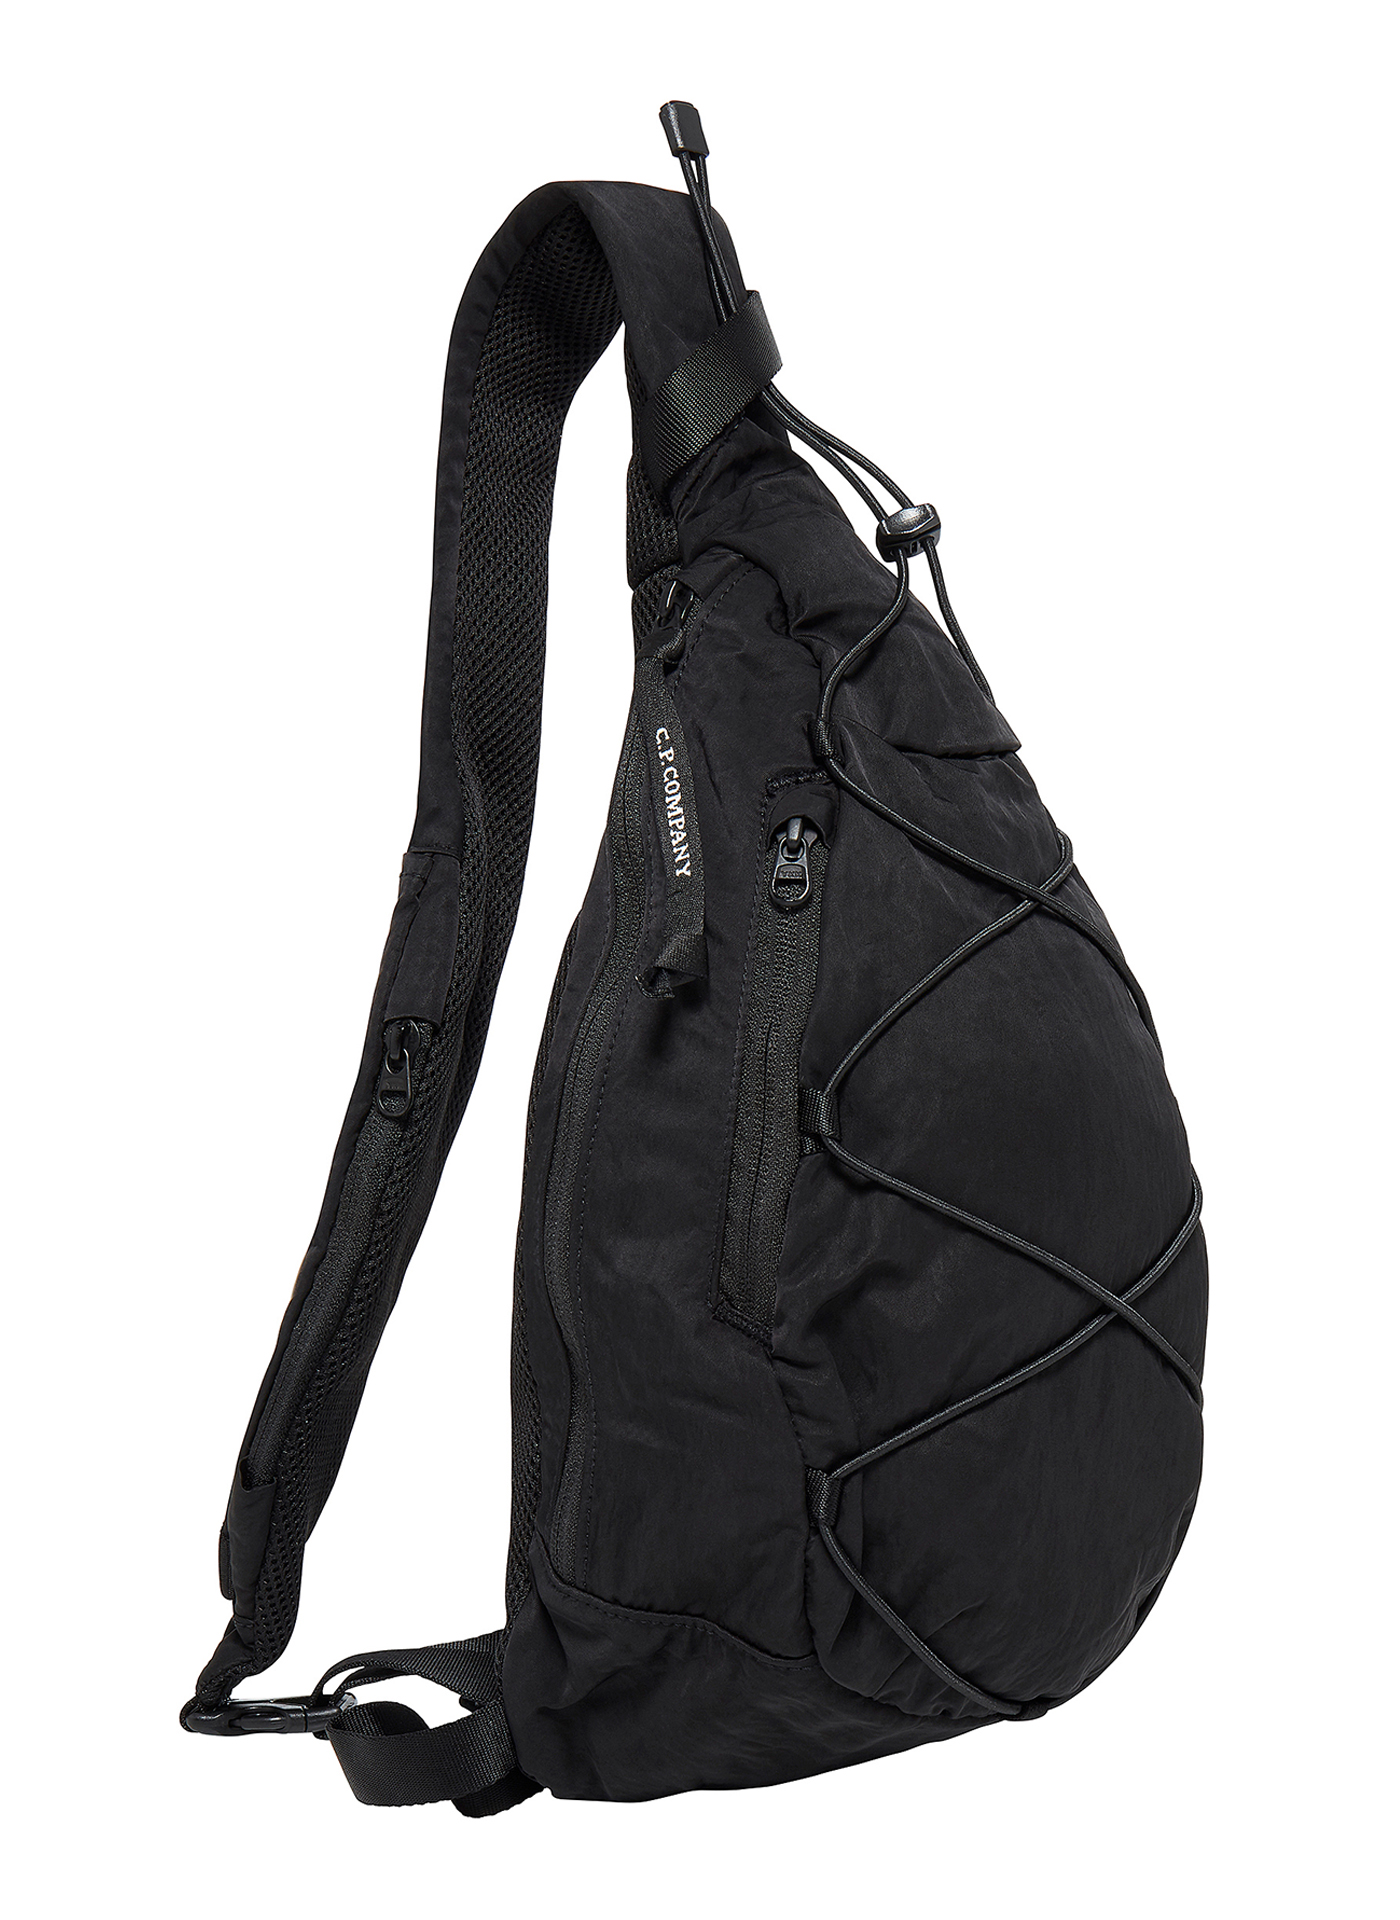 Side shot of a black C.P. Company runner bag in white background